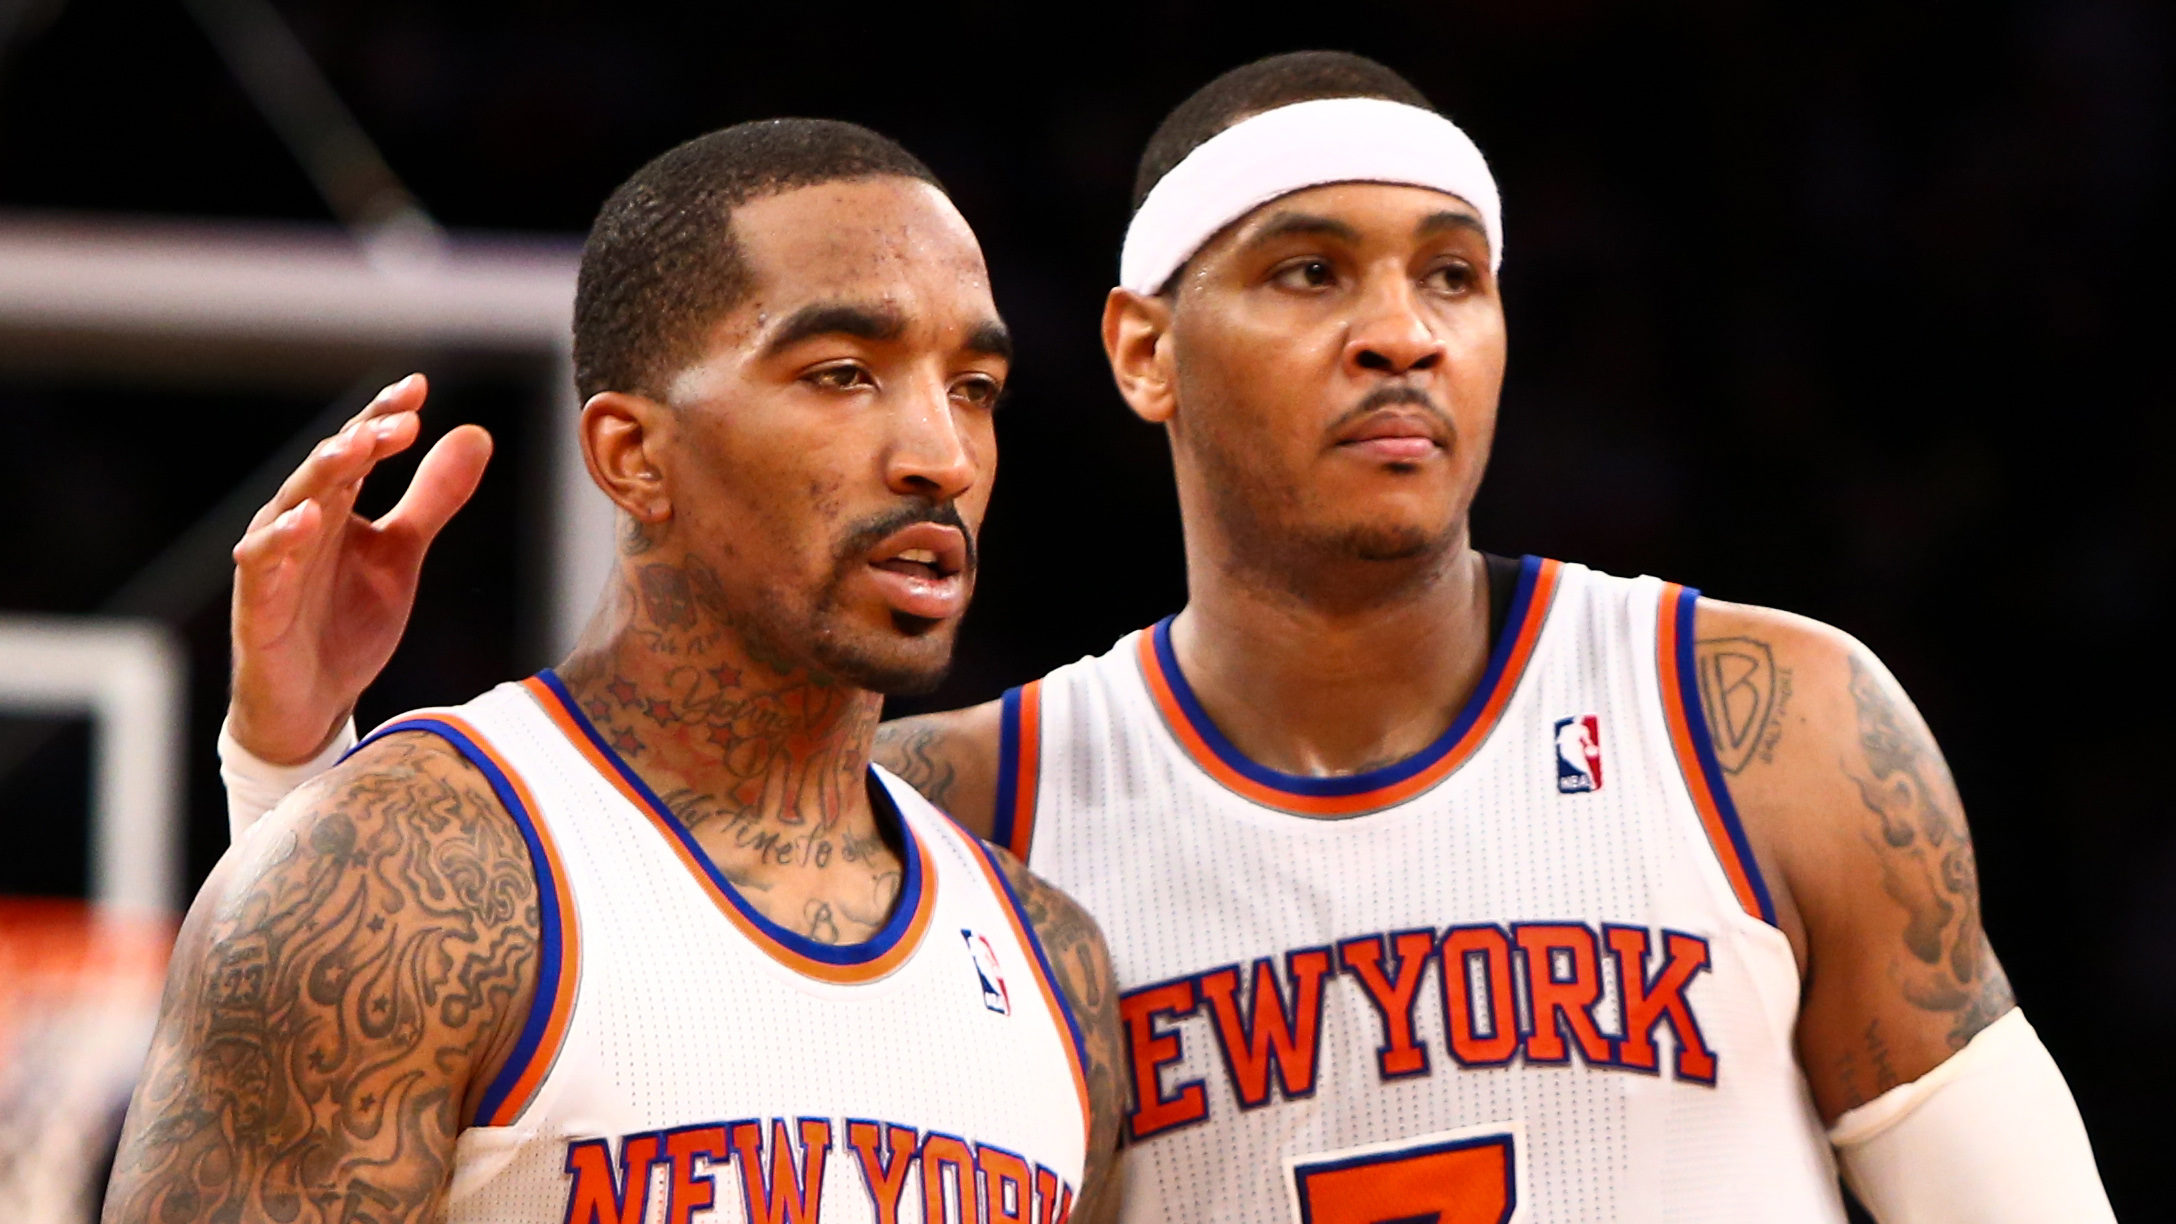 NBA Rumors trade deals free agency Carmelo Anthony Dwight Howard Shaun Livingston JR Smith